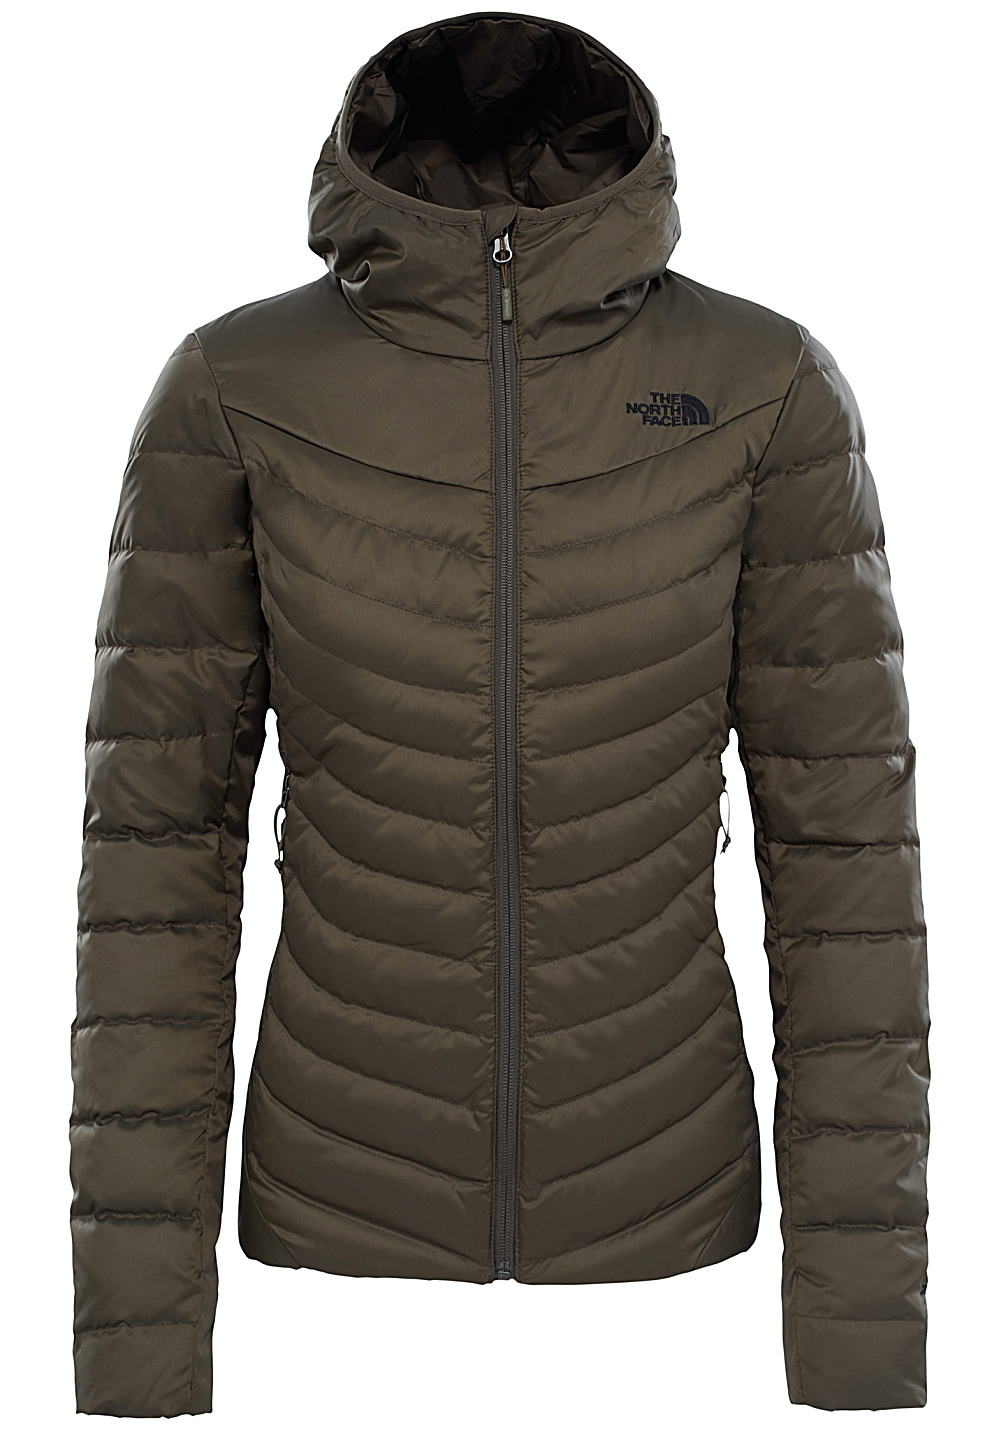 c413c3c76 THE NORTH FACE Tanken Insulated - Outdoor Jacket for Women - Green